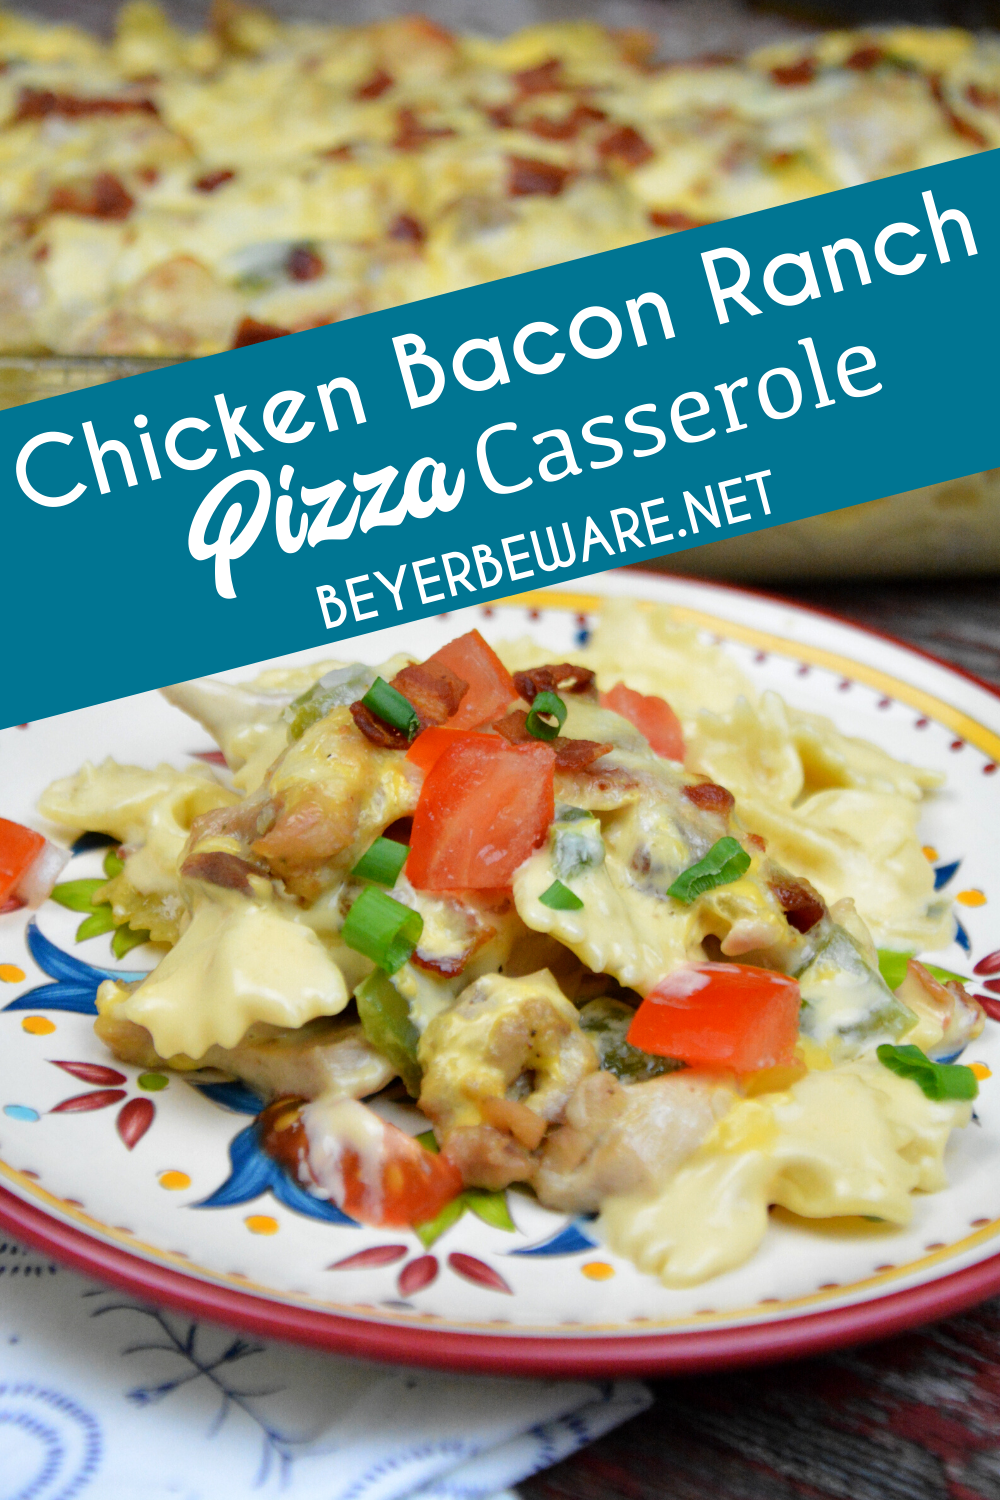 Chicken bacon ranch pizza casserole recipe is a hearty chicken pasta casserole that is perfect for chilly evenings or sports team dinners.